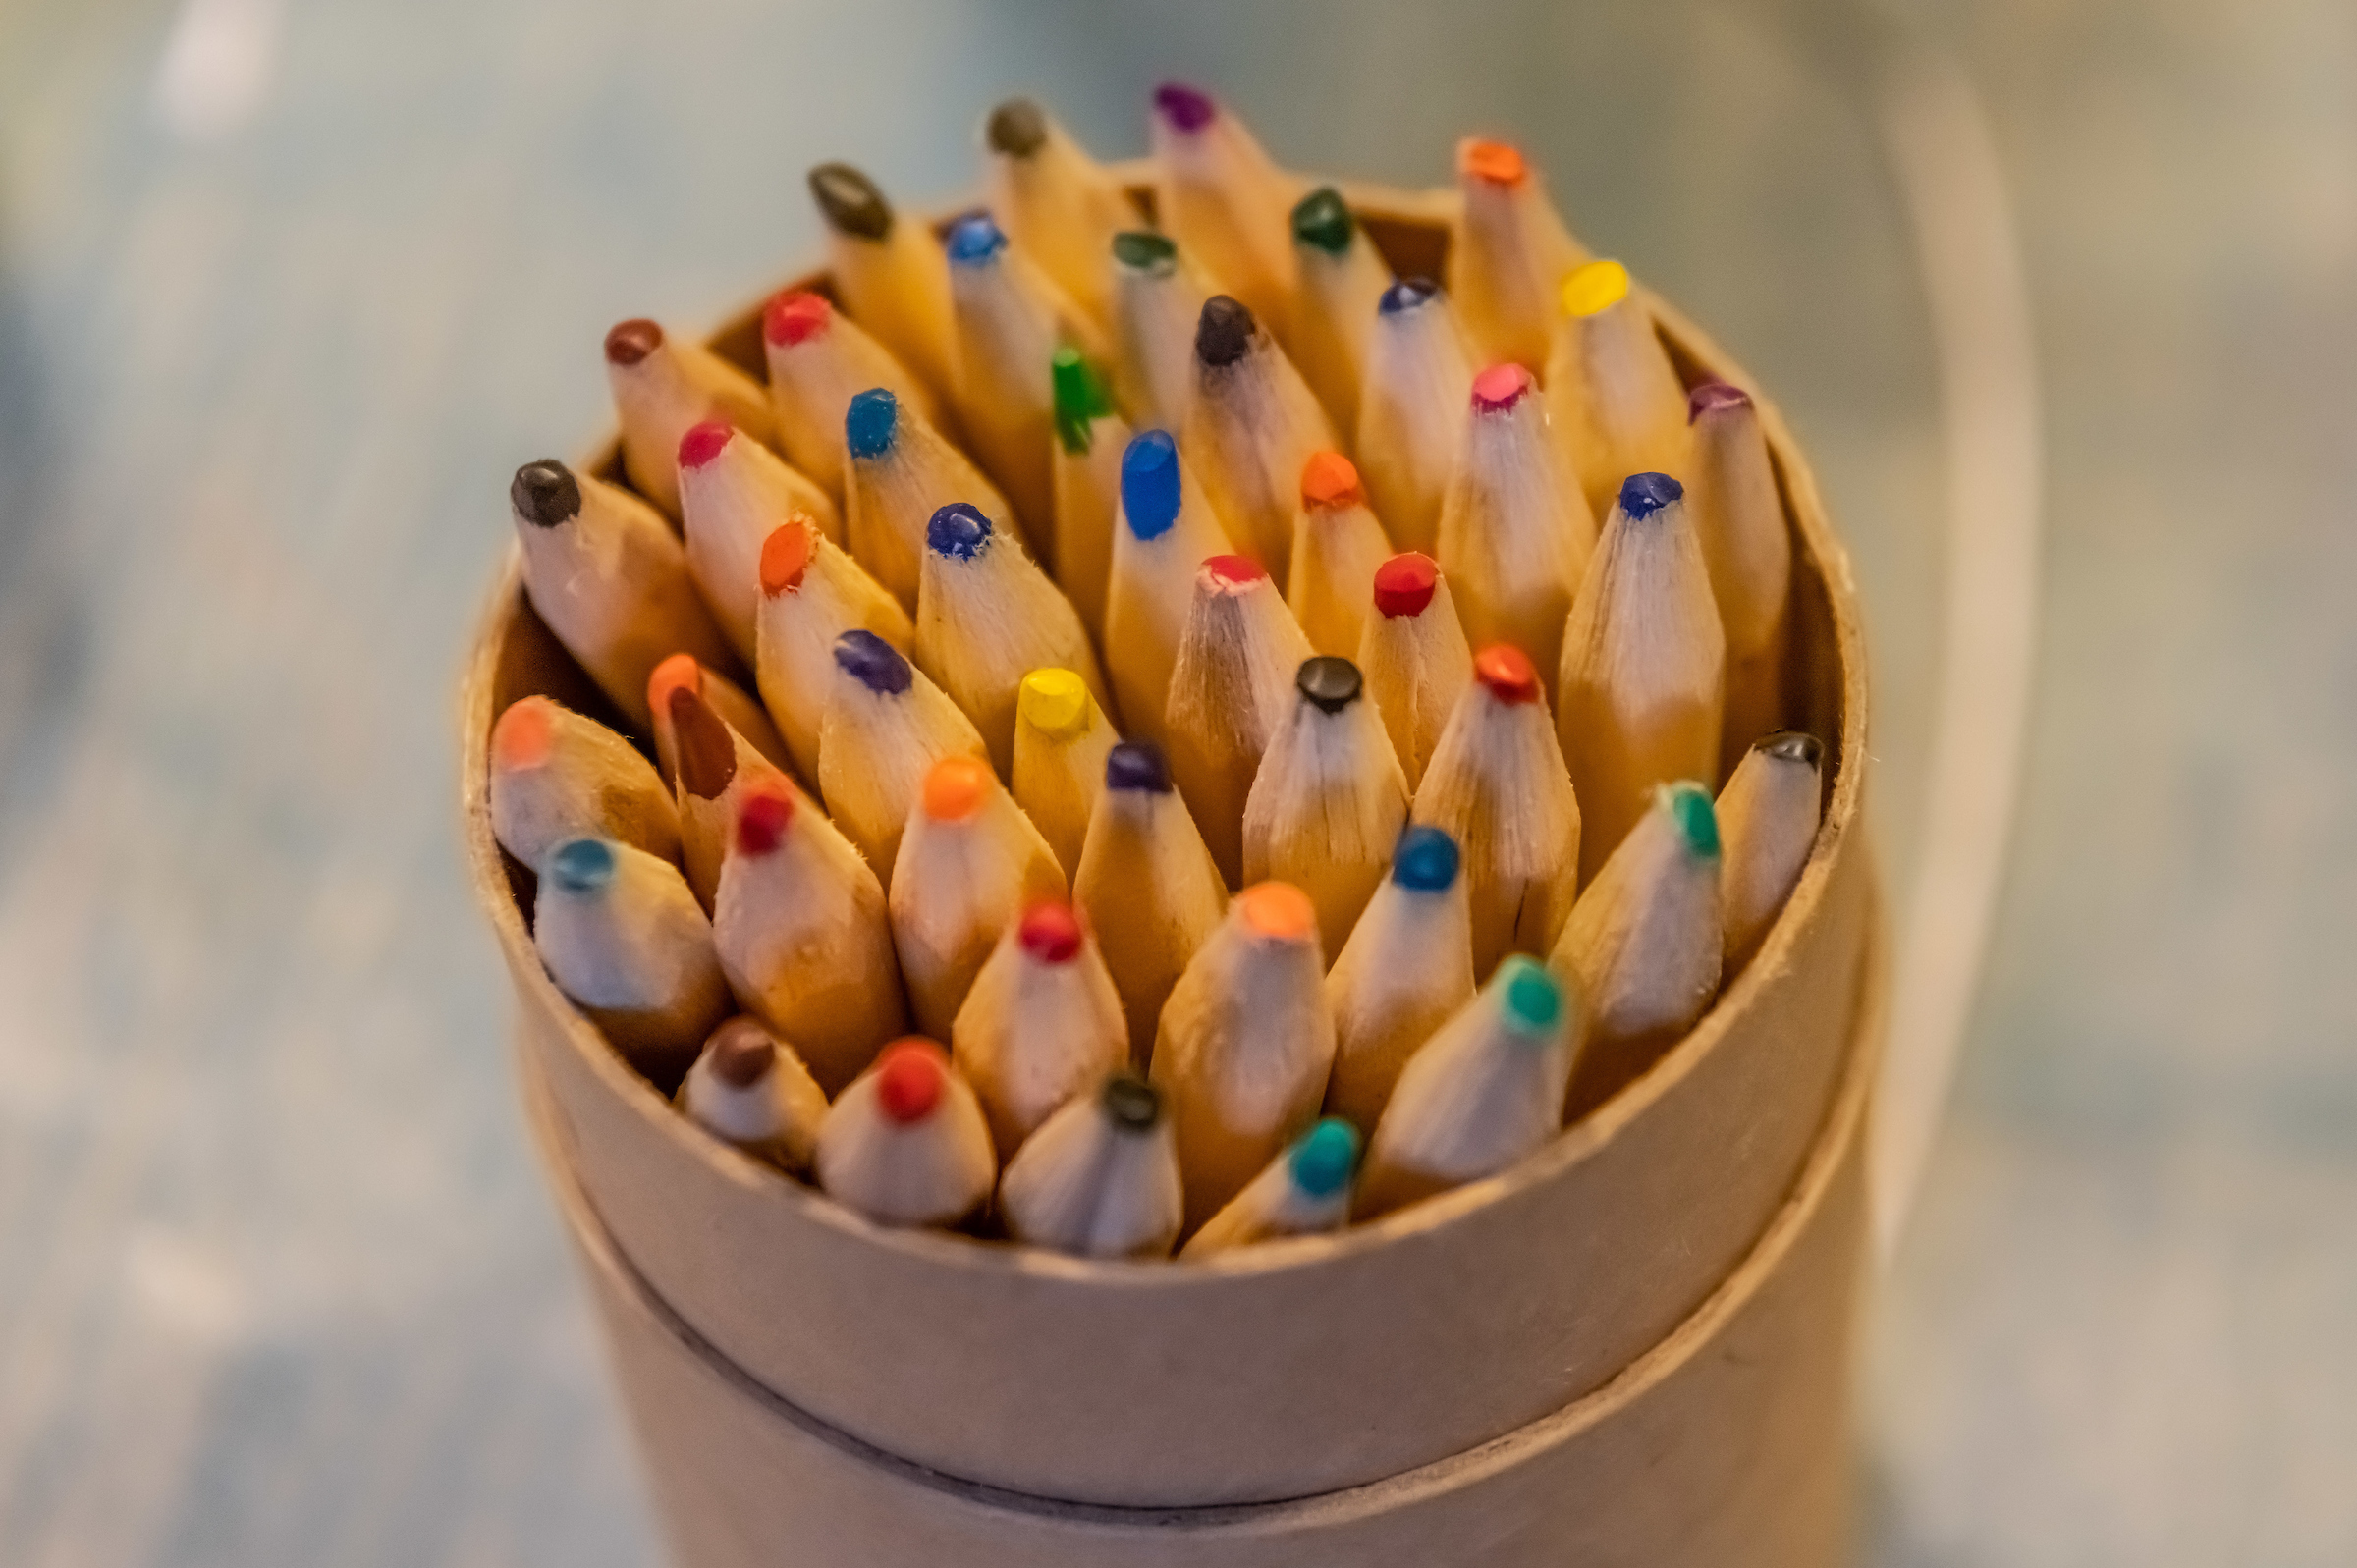 The tops of colourful pencils; they stand in a brown circular container.